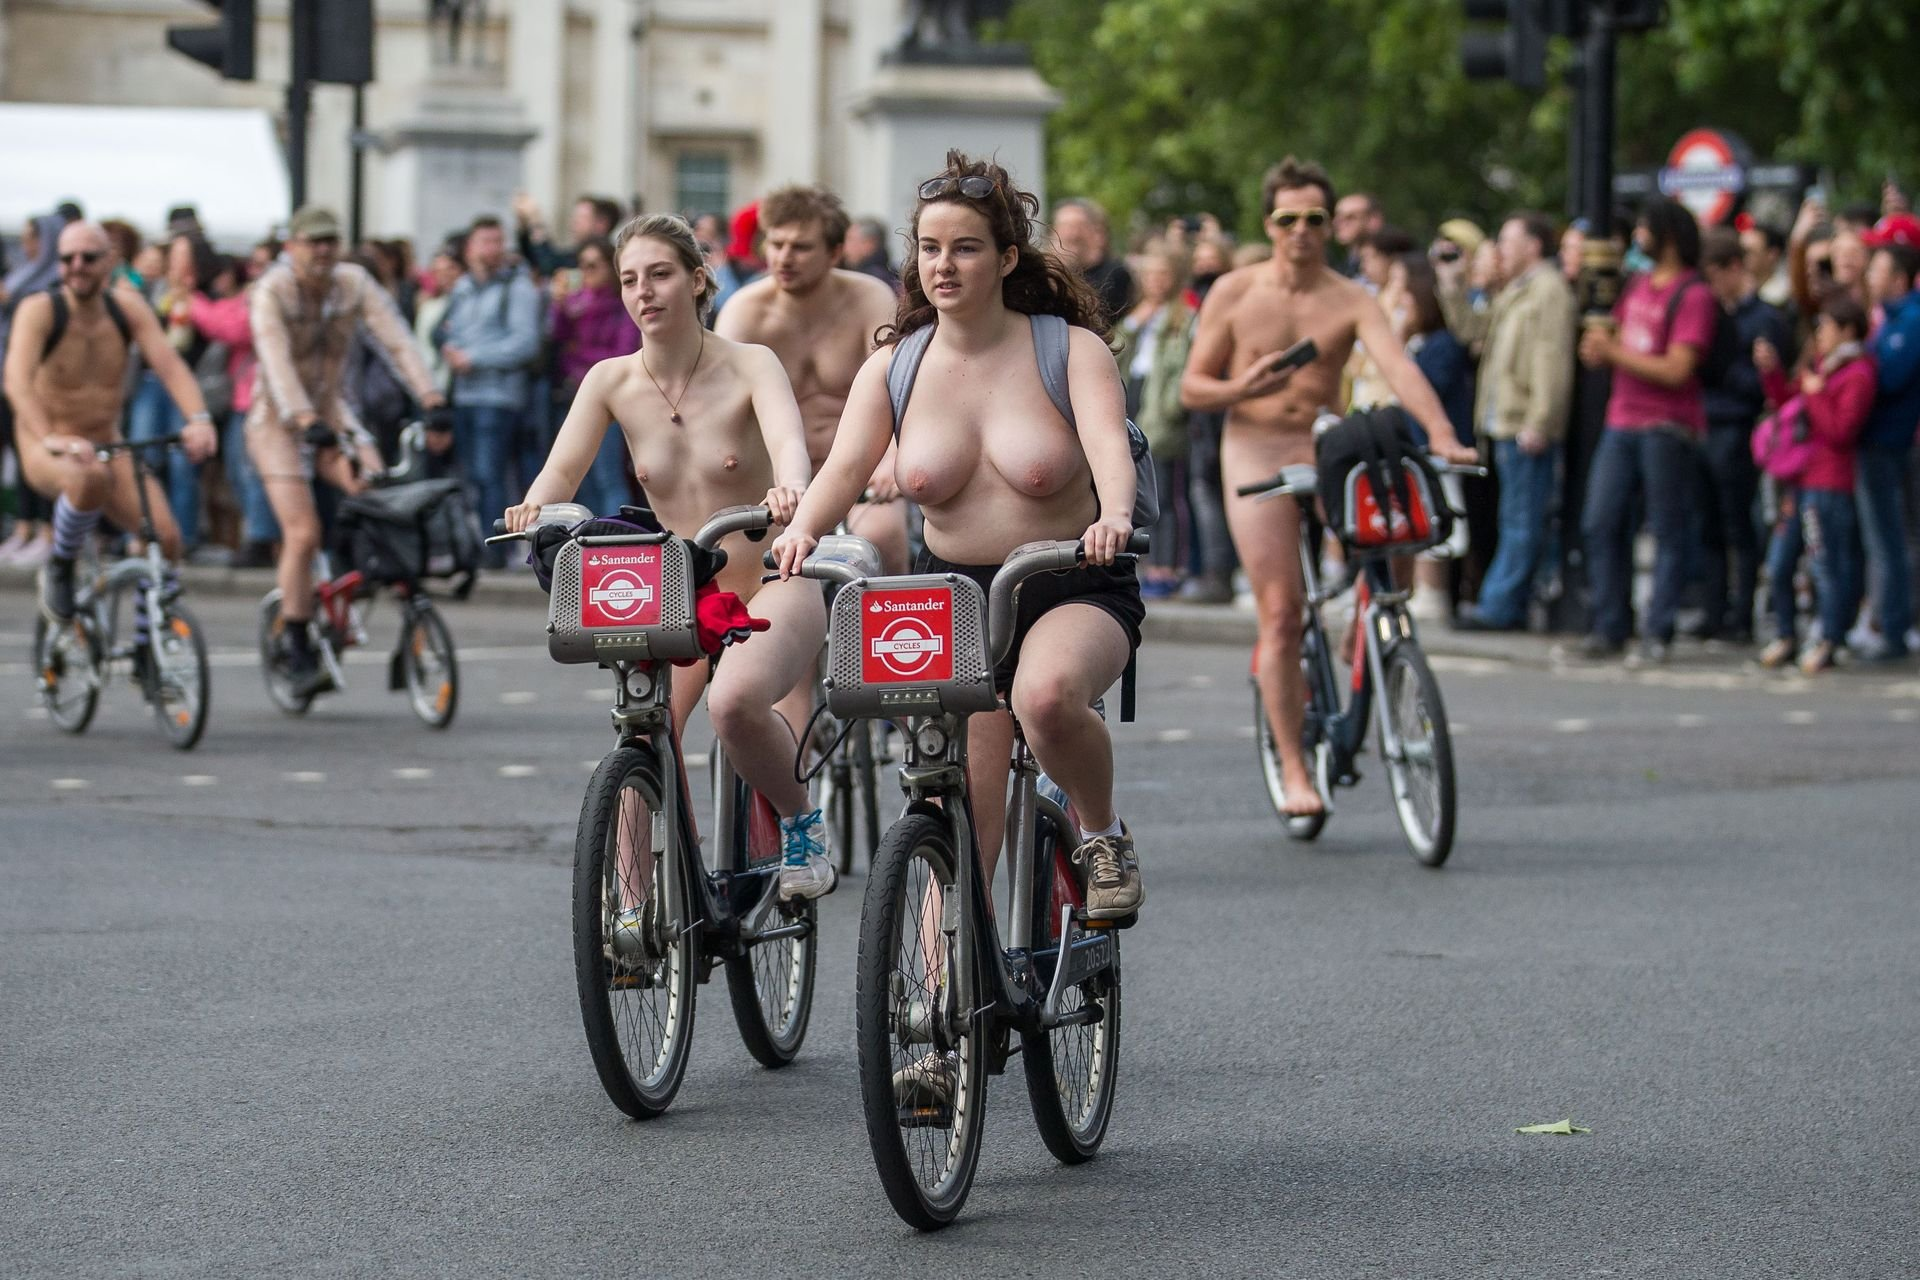 World Naked Bike Ride (WNBR) in London, 06/08/2019.